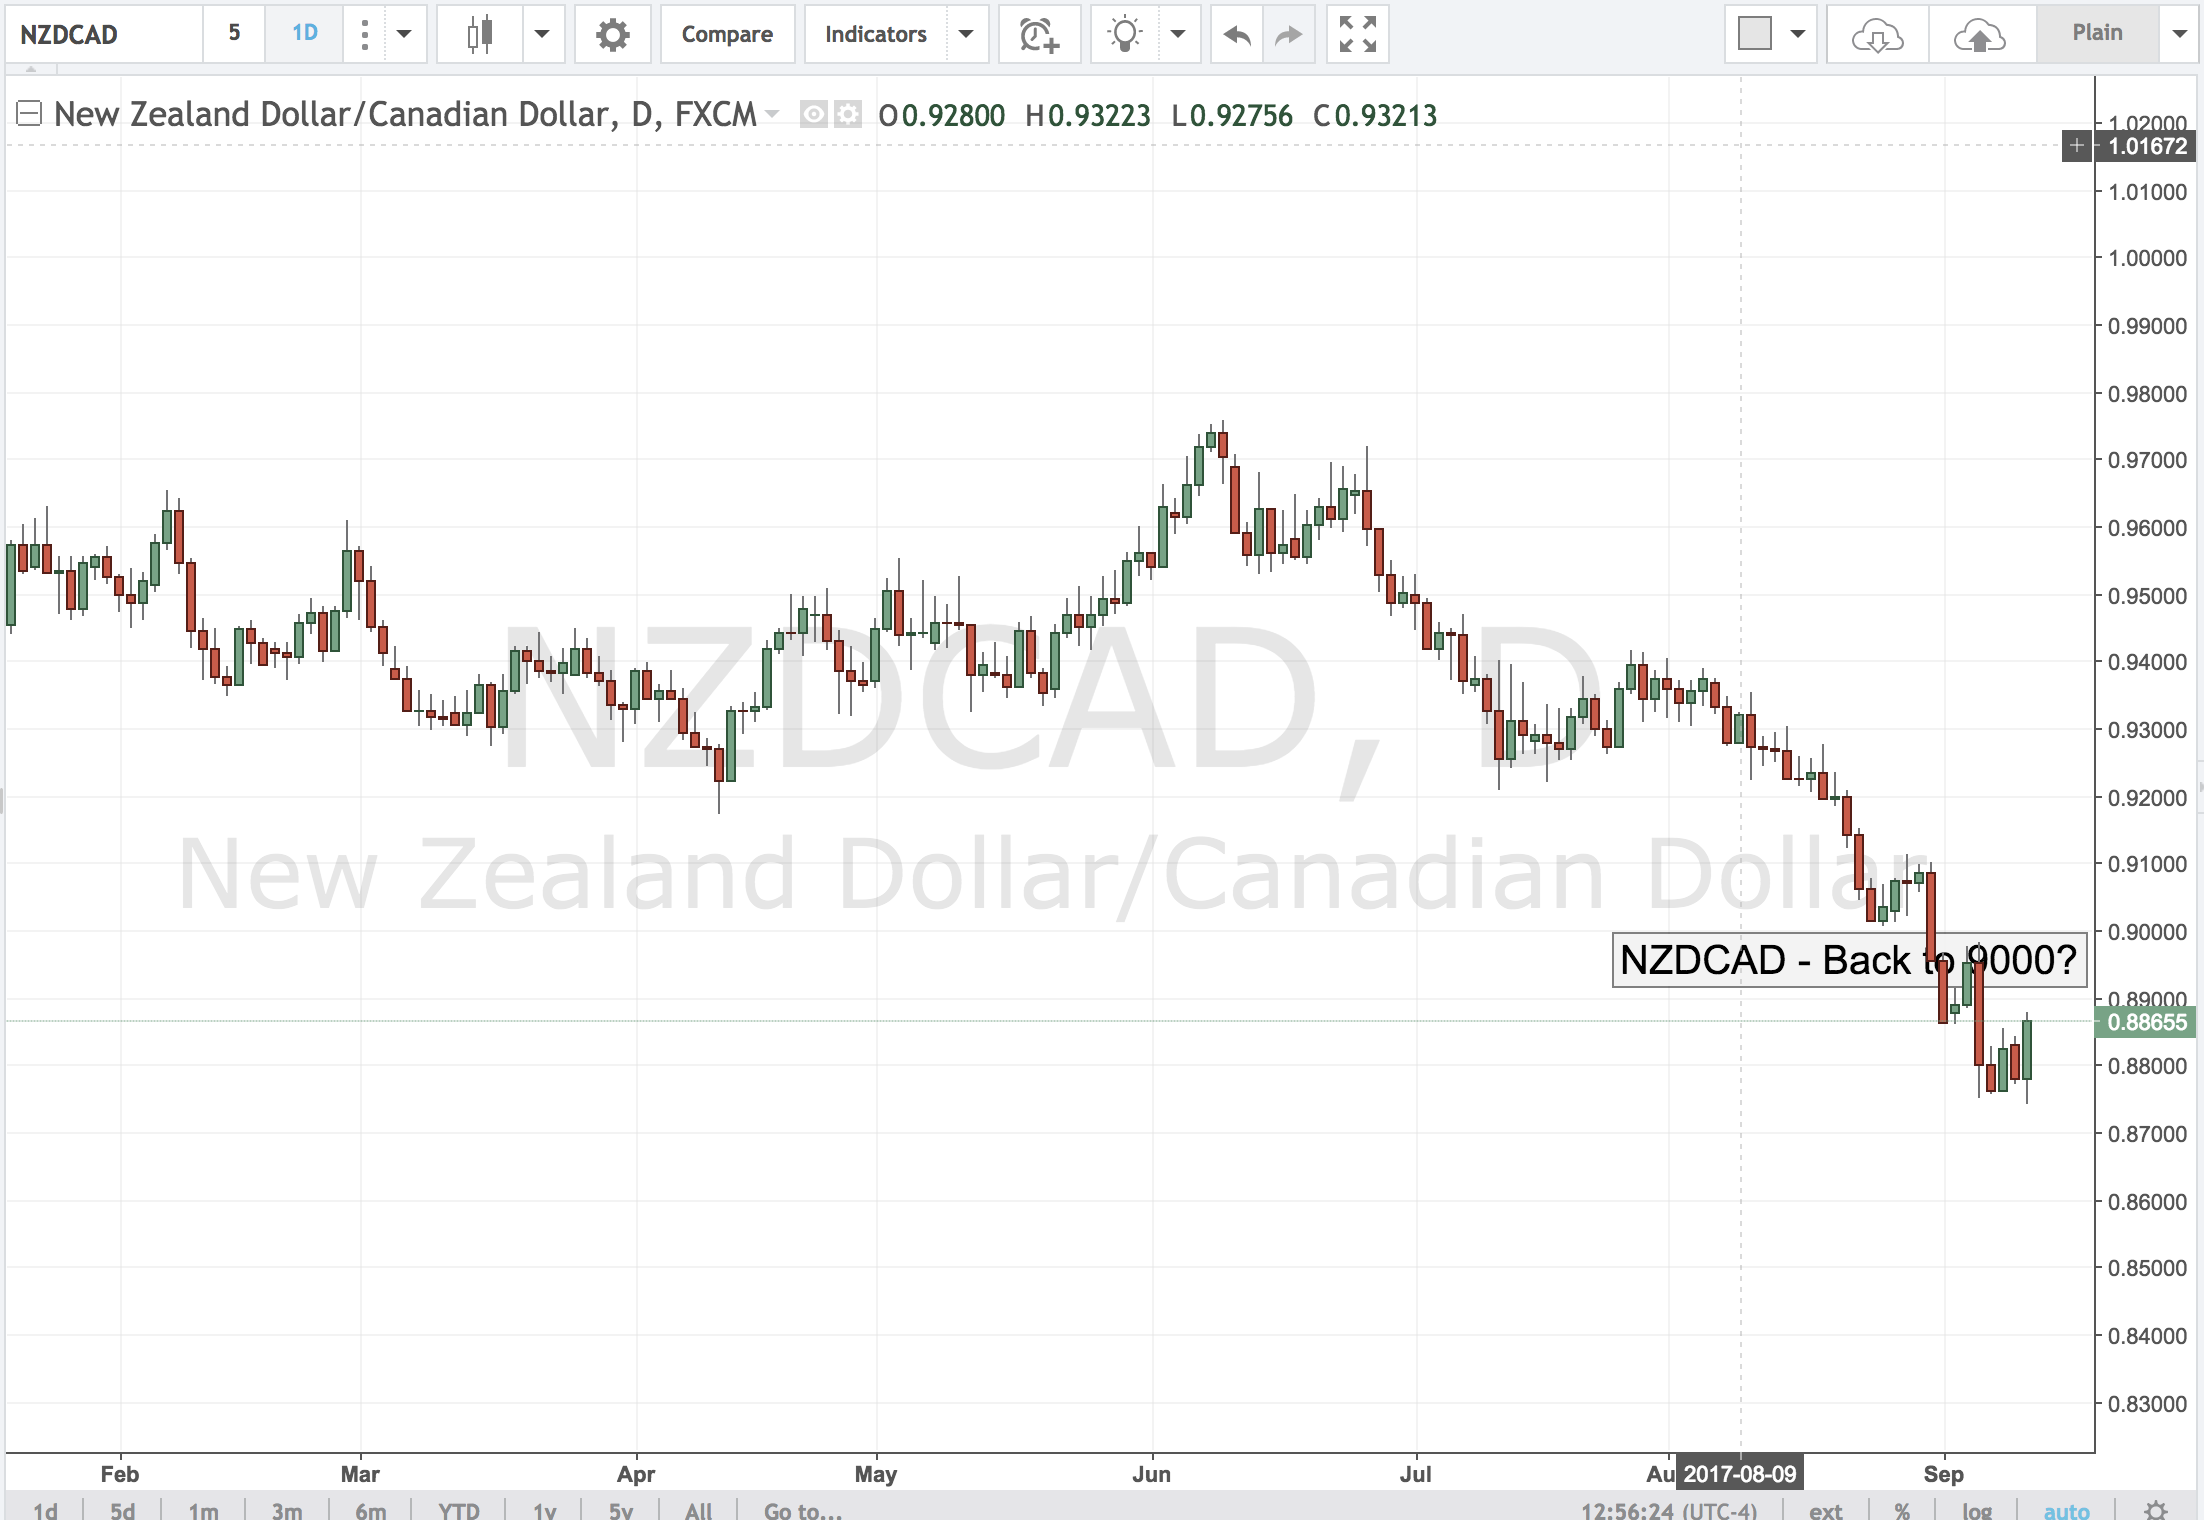 NZDCAD – Back to 9000?